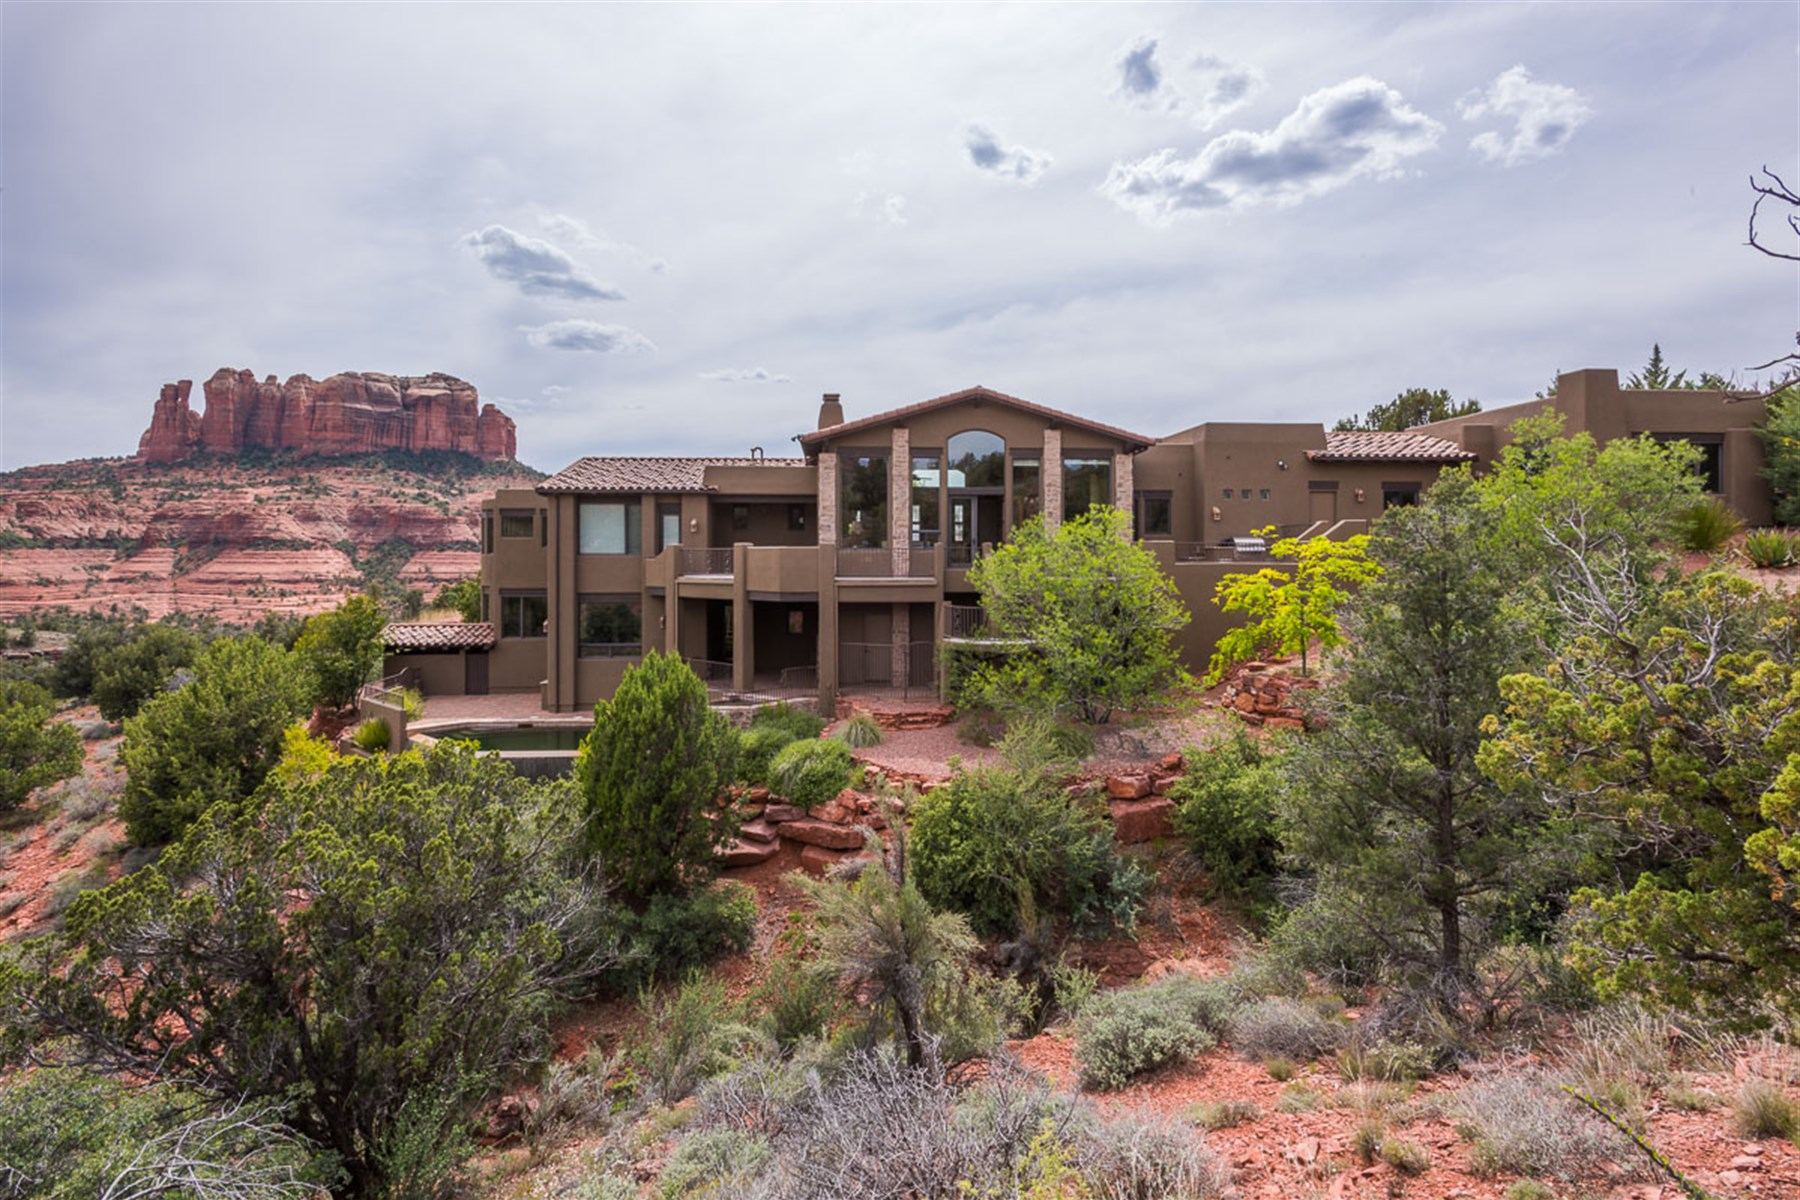 Single Family Home for Sale at Sante Fe luxury home sits elevated in this magical environment of Back O' Beyond 15 ROSEMARY CT Sedona, Arizona, 86336 United States